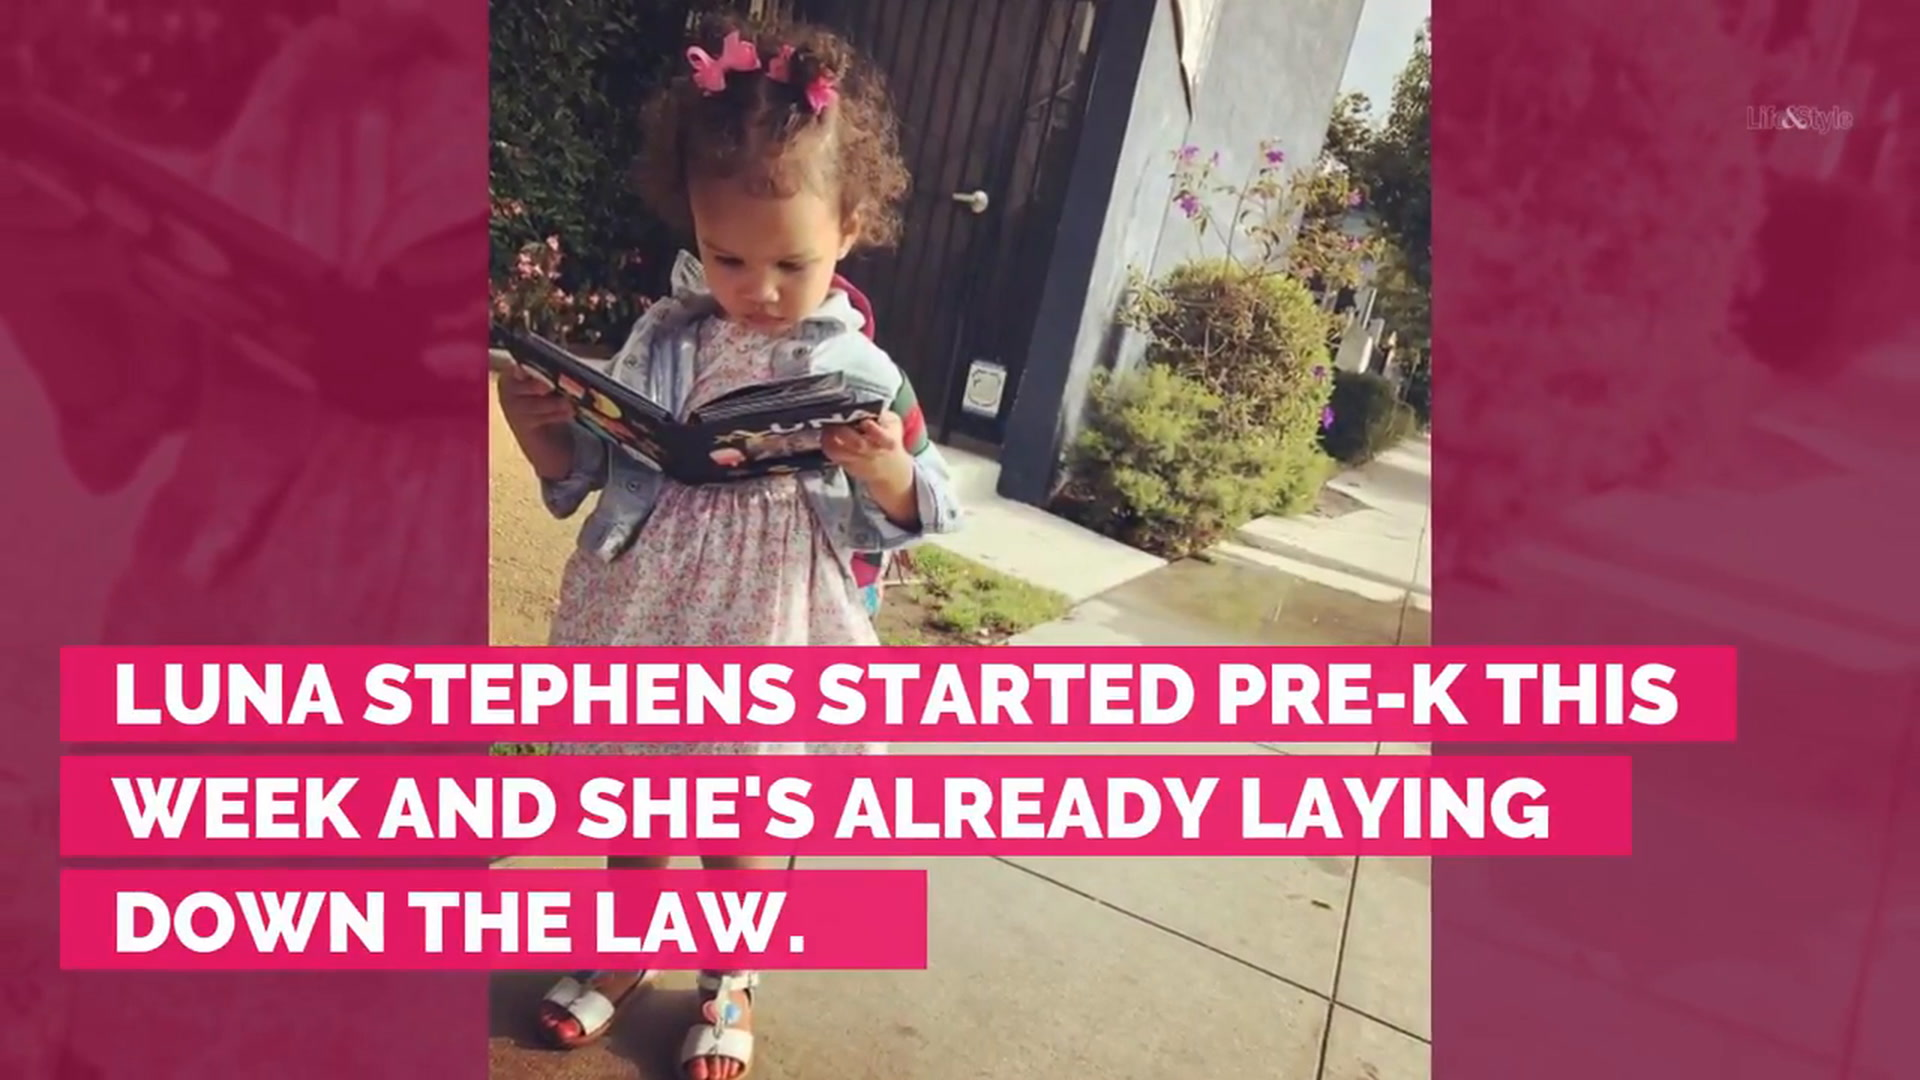 Luna Stephens Lays Down the Law at Pre-K